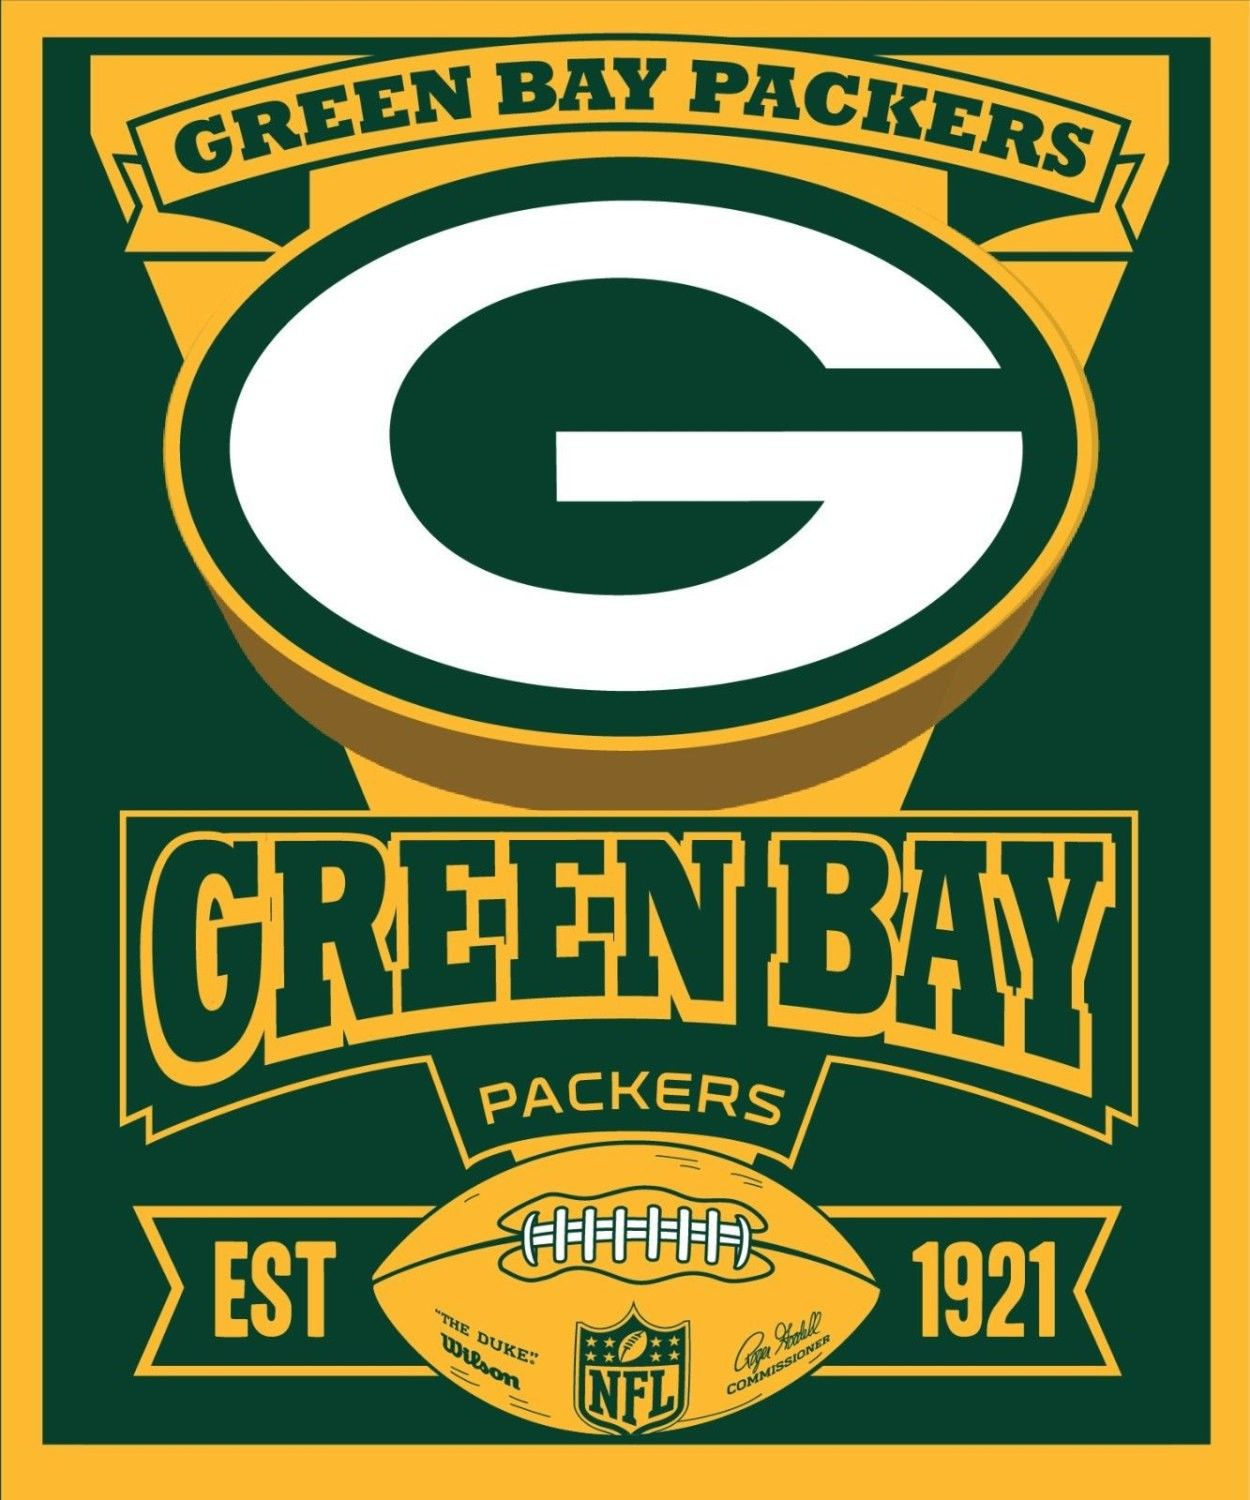 Green Bay Packers Posters Google Search Green Bay Packers Blanket Green Bay Packers Green Bay